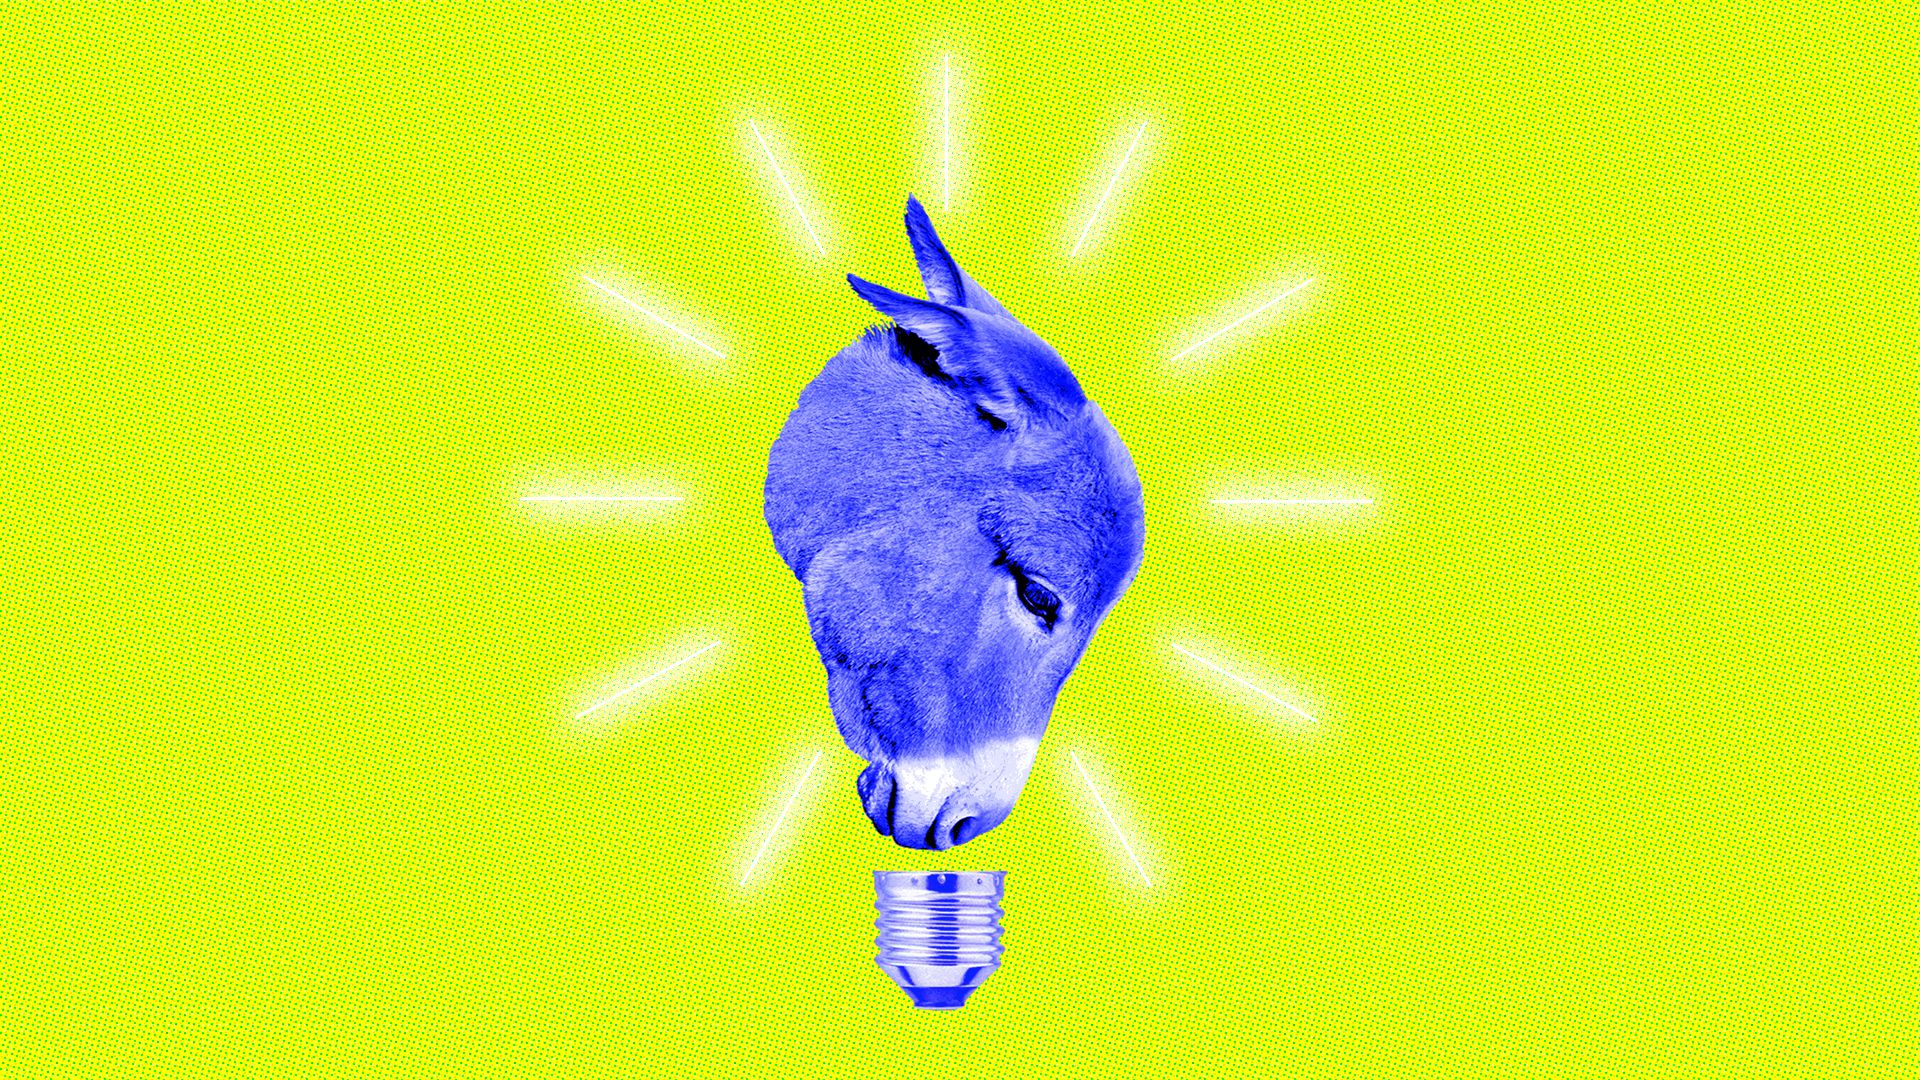 This is a donkey and a lightbulb, a symbol of the 2020 Democratic presidential election race